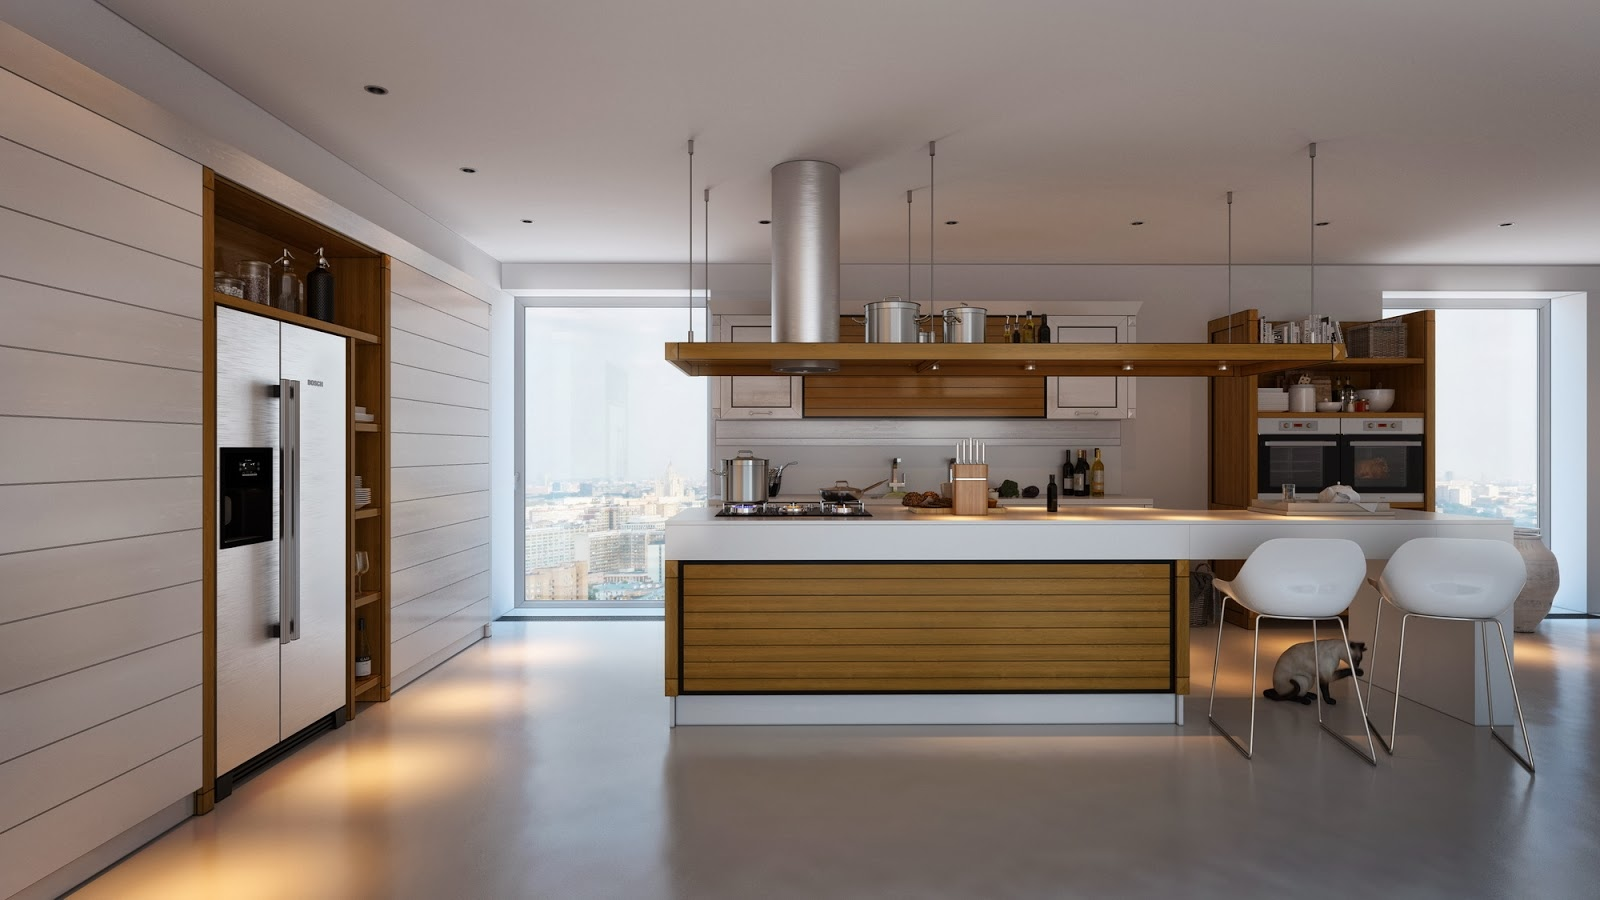 2 minimalist kitchen design that will stunning you by for Stunning kitchen designs